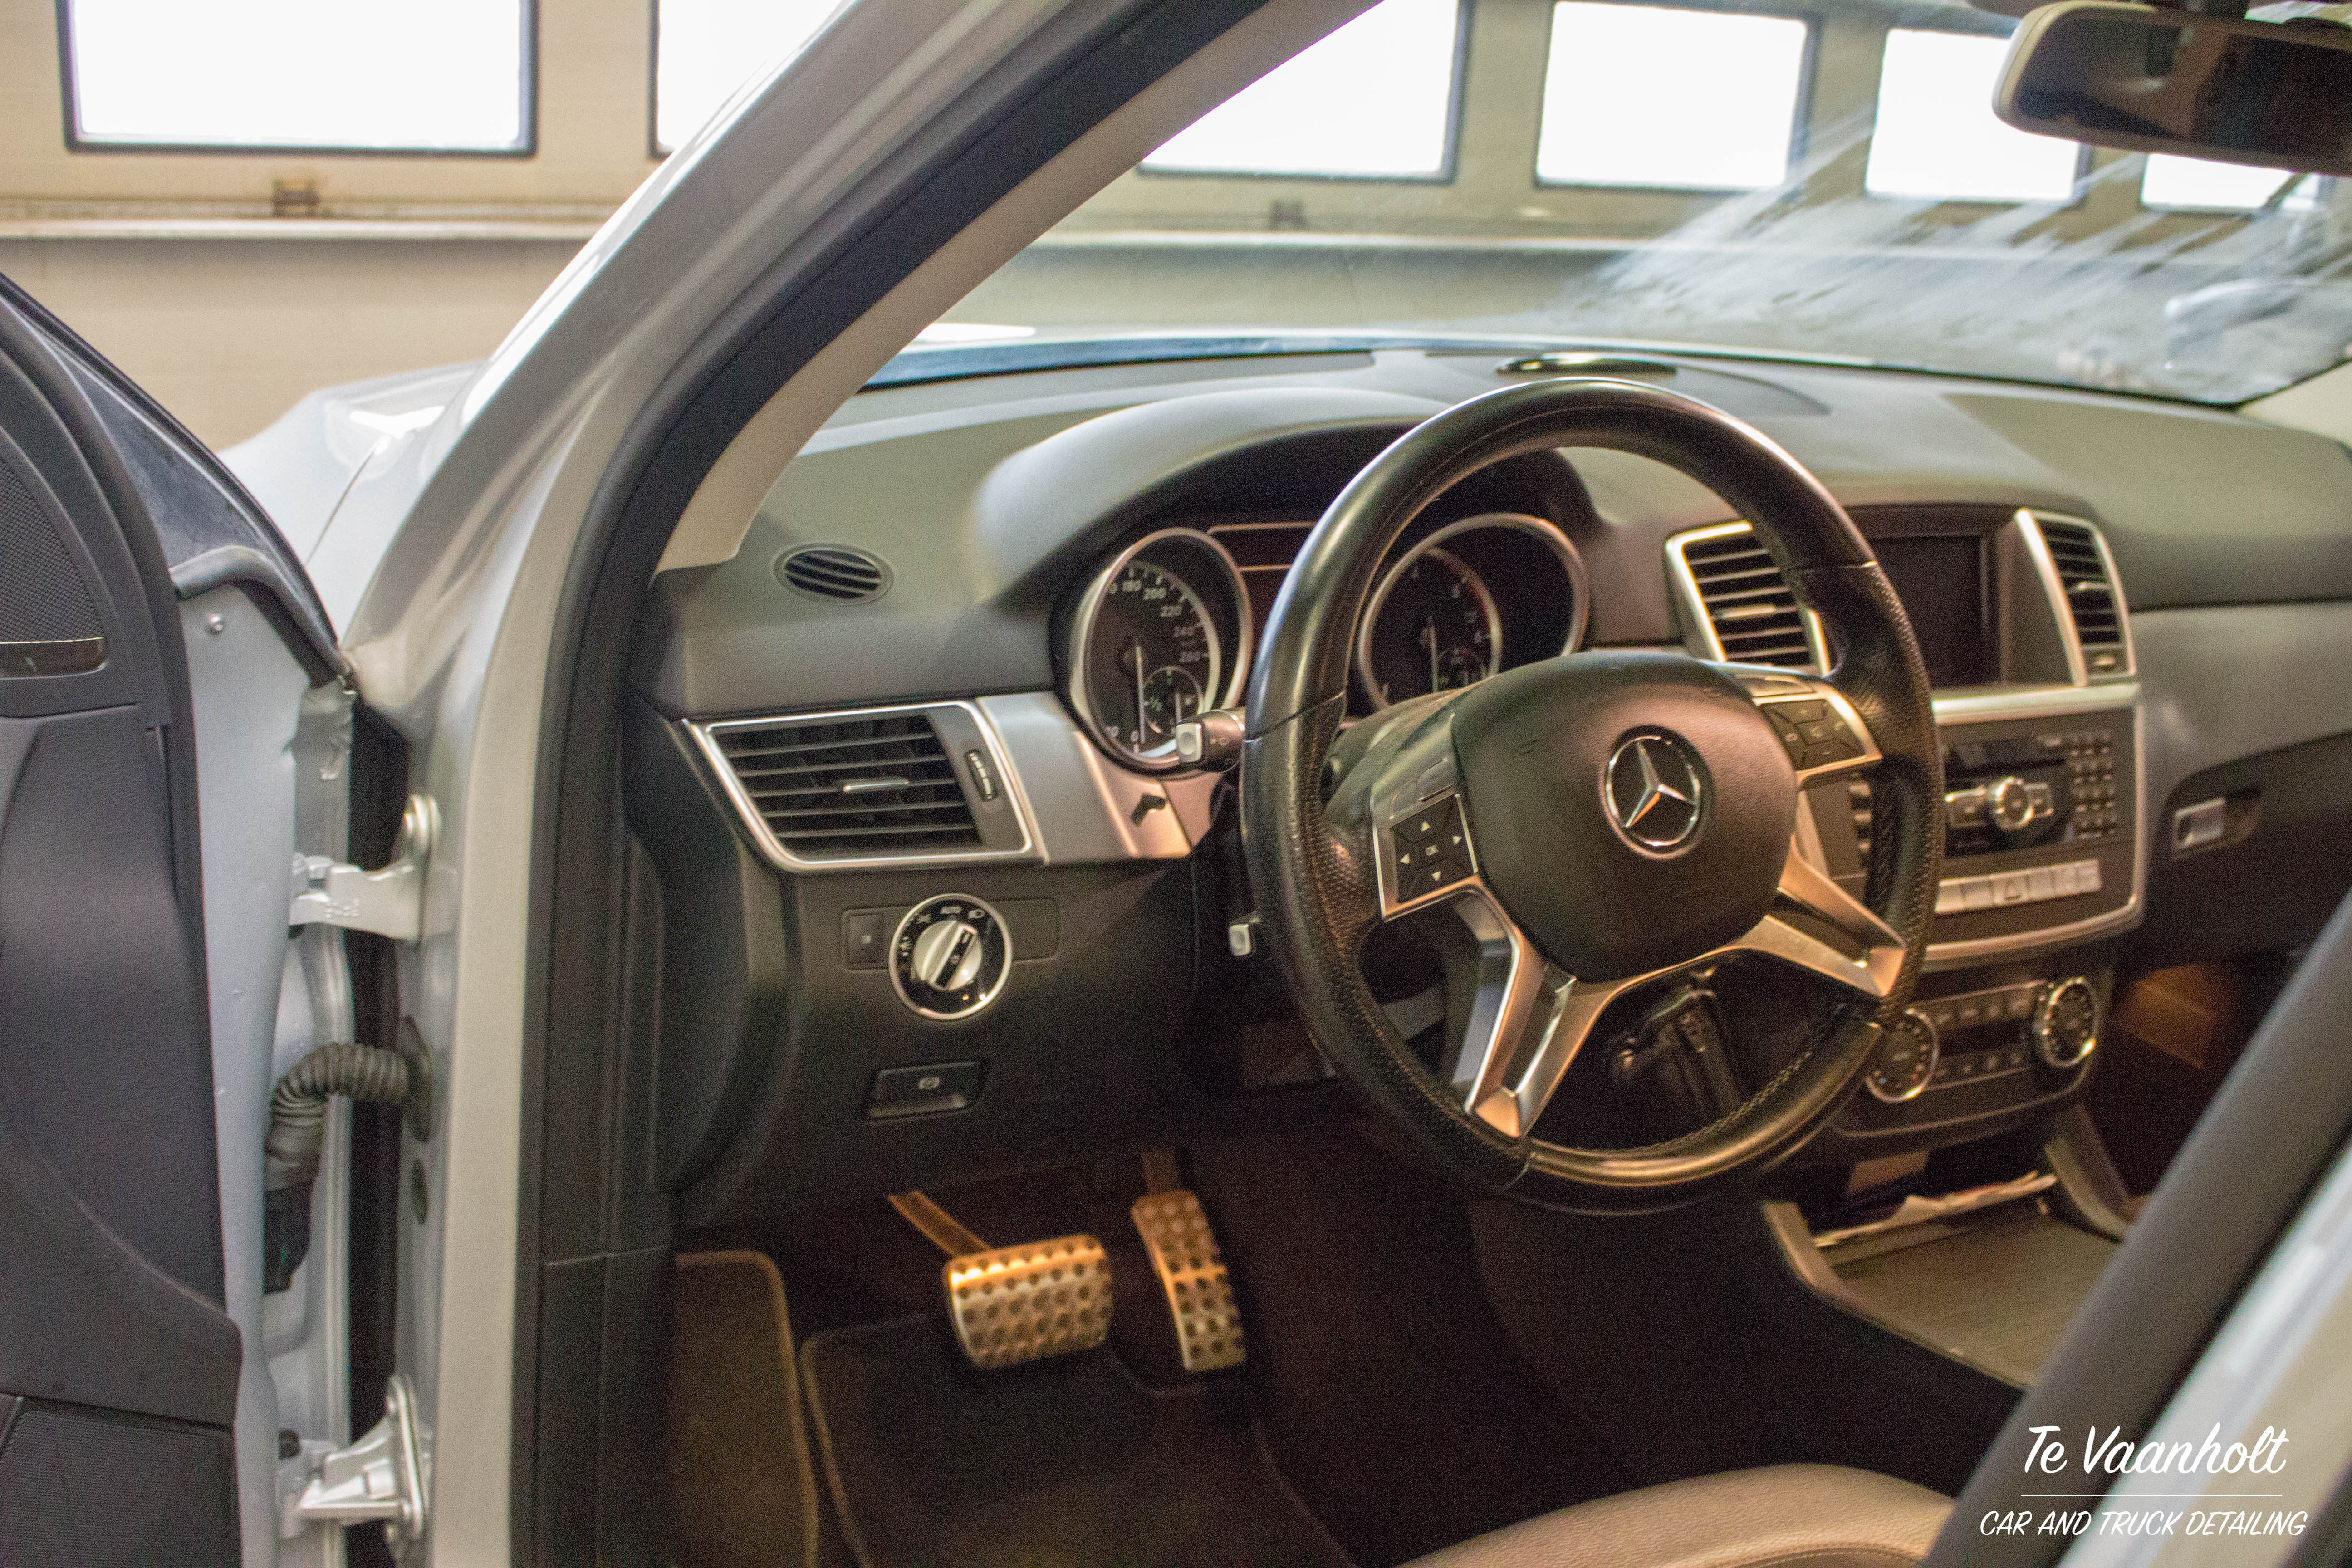 TeVaanholtCarCleaning.nl-Mercedes-Benz-ML-350-CDI-15